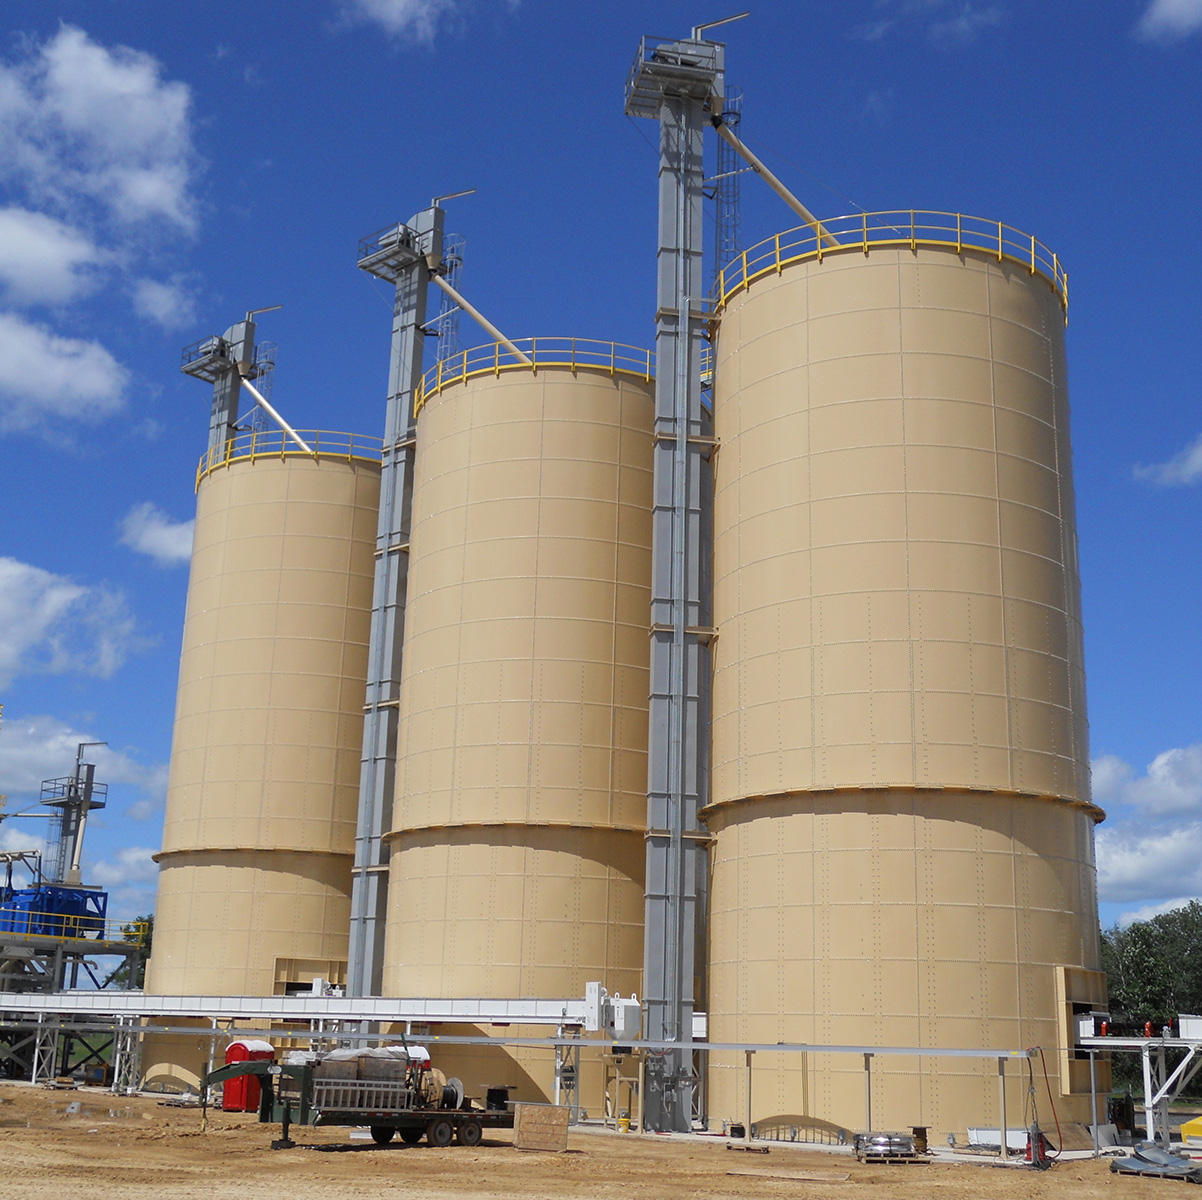 Tan frac sand tanks